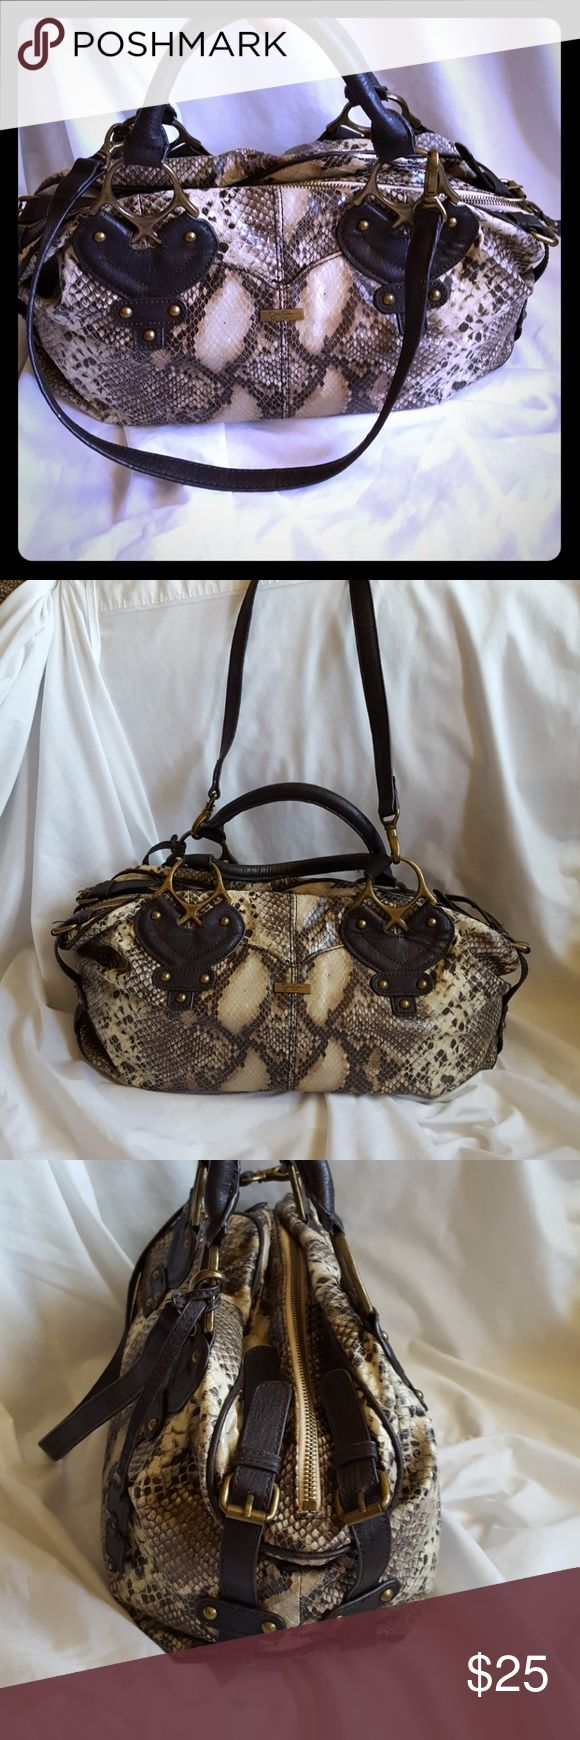 """Large Jessica Simpson Snakeskin Bag Cute """"snakeskin"""" bag with double handles and removable shoulder strap. Bag measures 16"""" wide x 9"""" tall x 7"""" deep sides that expand. Handles add 5"""" to height or shoulder strap adds 14"""" to height. Zip closure.  Bag has 1 interior zip pocket and 2 smaller accessory pouches.   Good used condition.  A couple small signs of wear - see zoomed in pic of front label plate.Barely noticible with snakeskin pattern.  Smoke free and pet free home. Jessica Simpson Bags"""